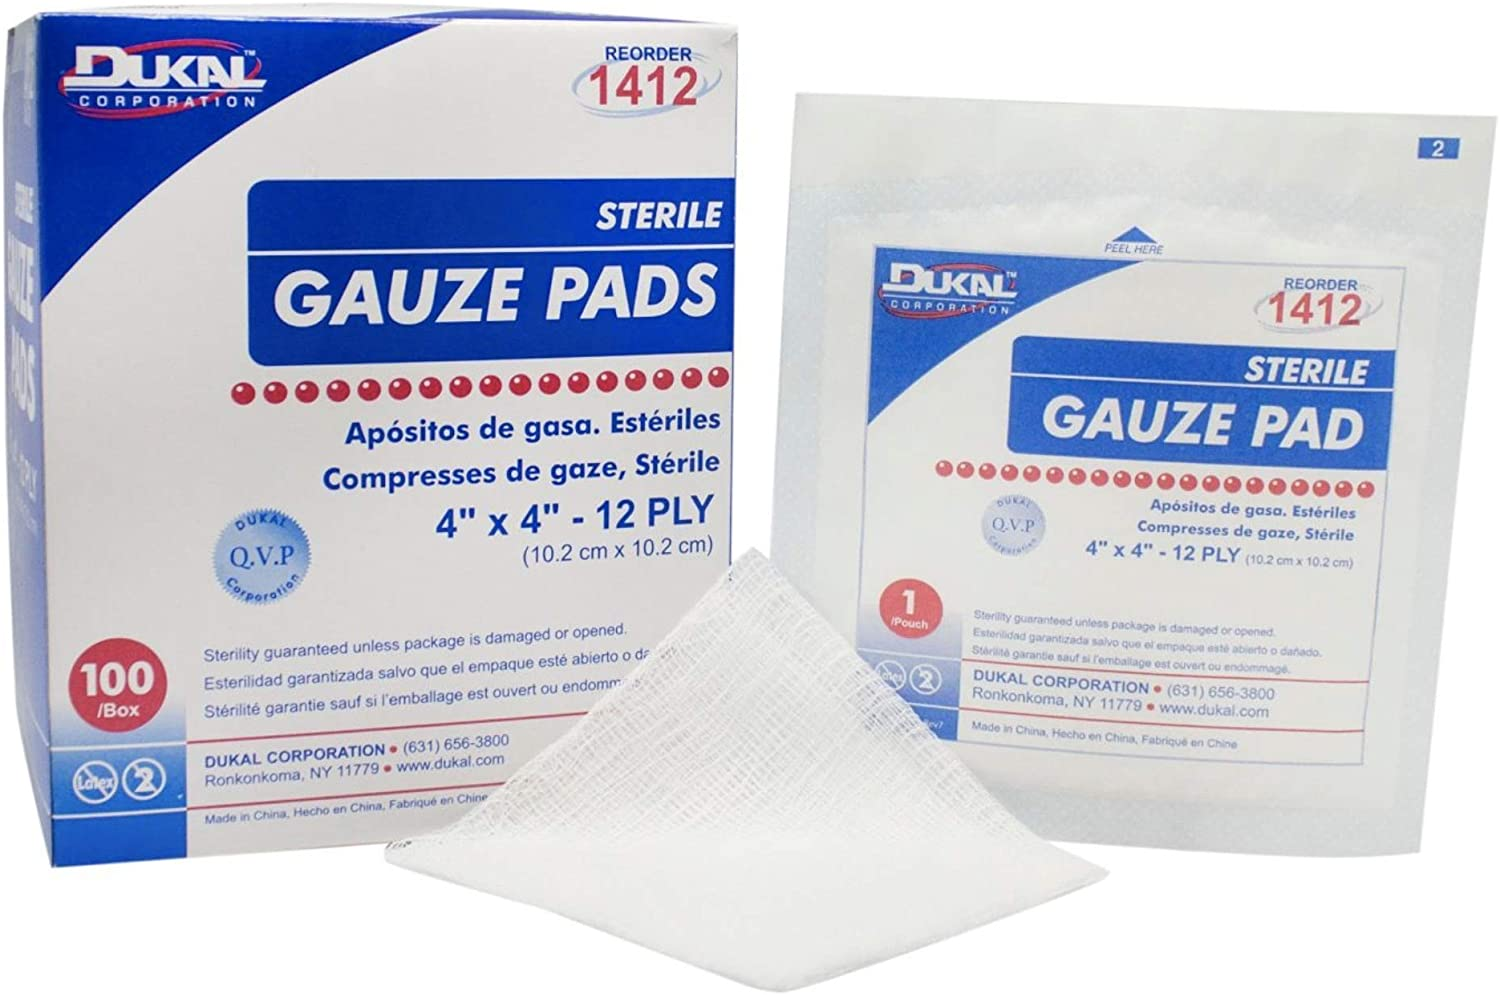 Dukal Today's only Sterile Gauze Pads 100% and Wra Individually Cotton Gifts Woven